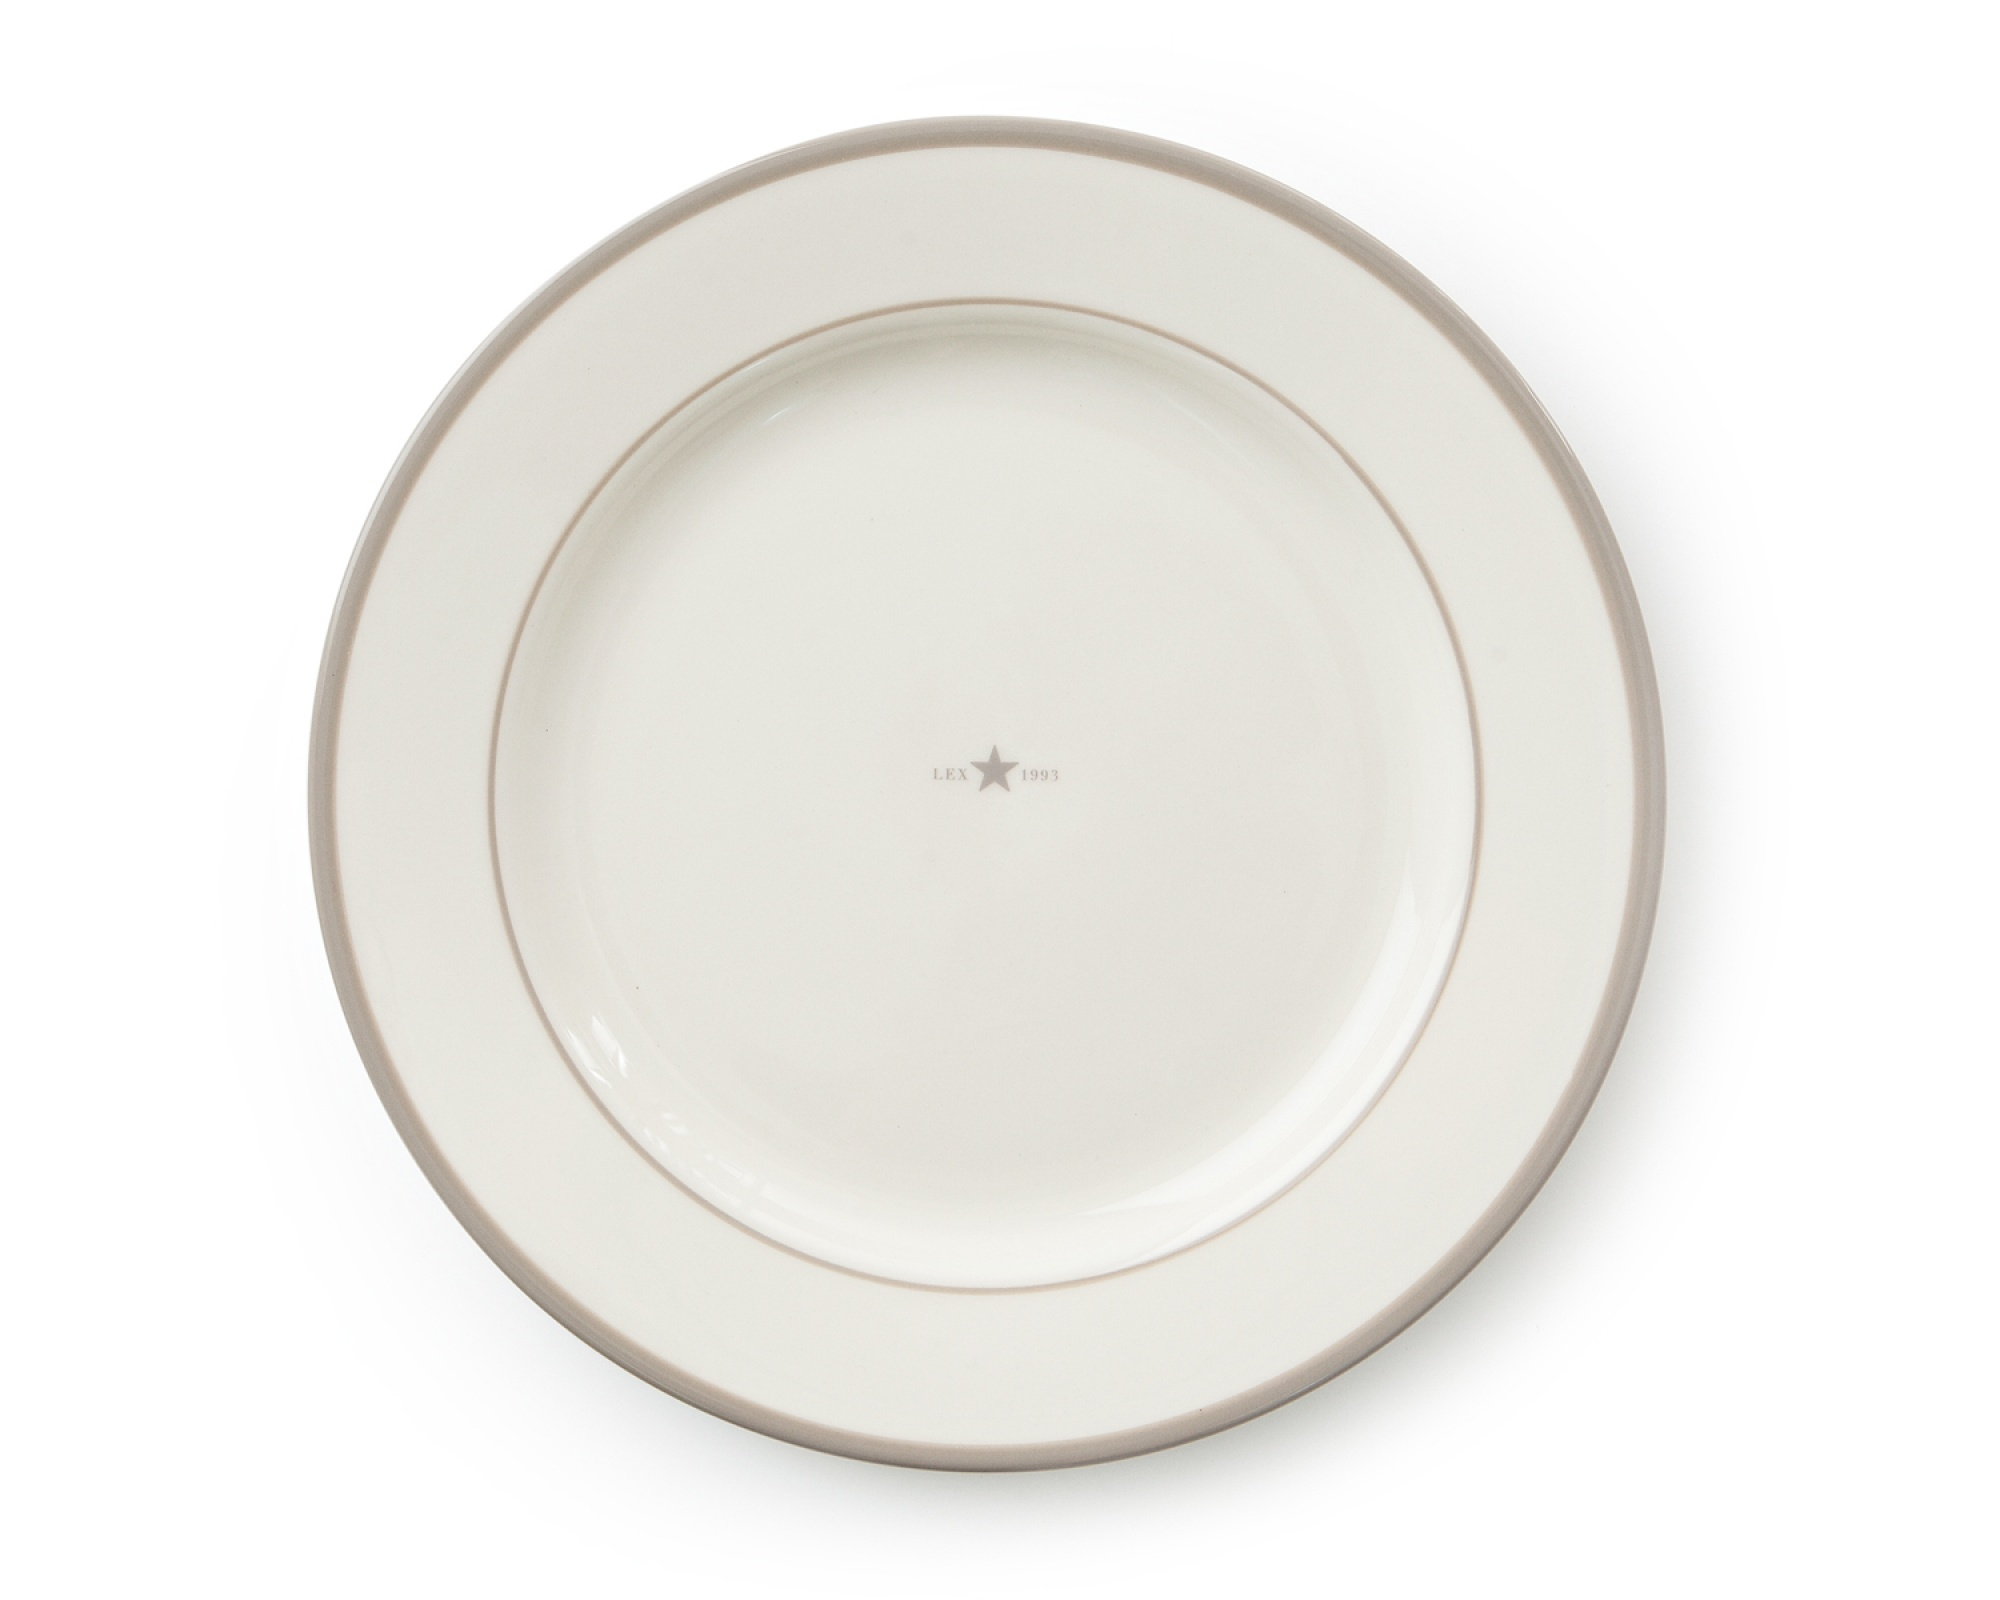 LEXINGTON Assiette Plate beige lot de 4